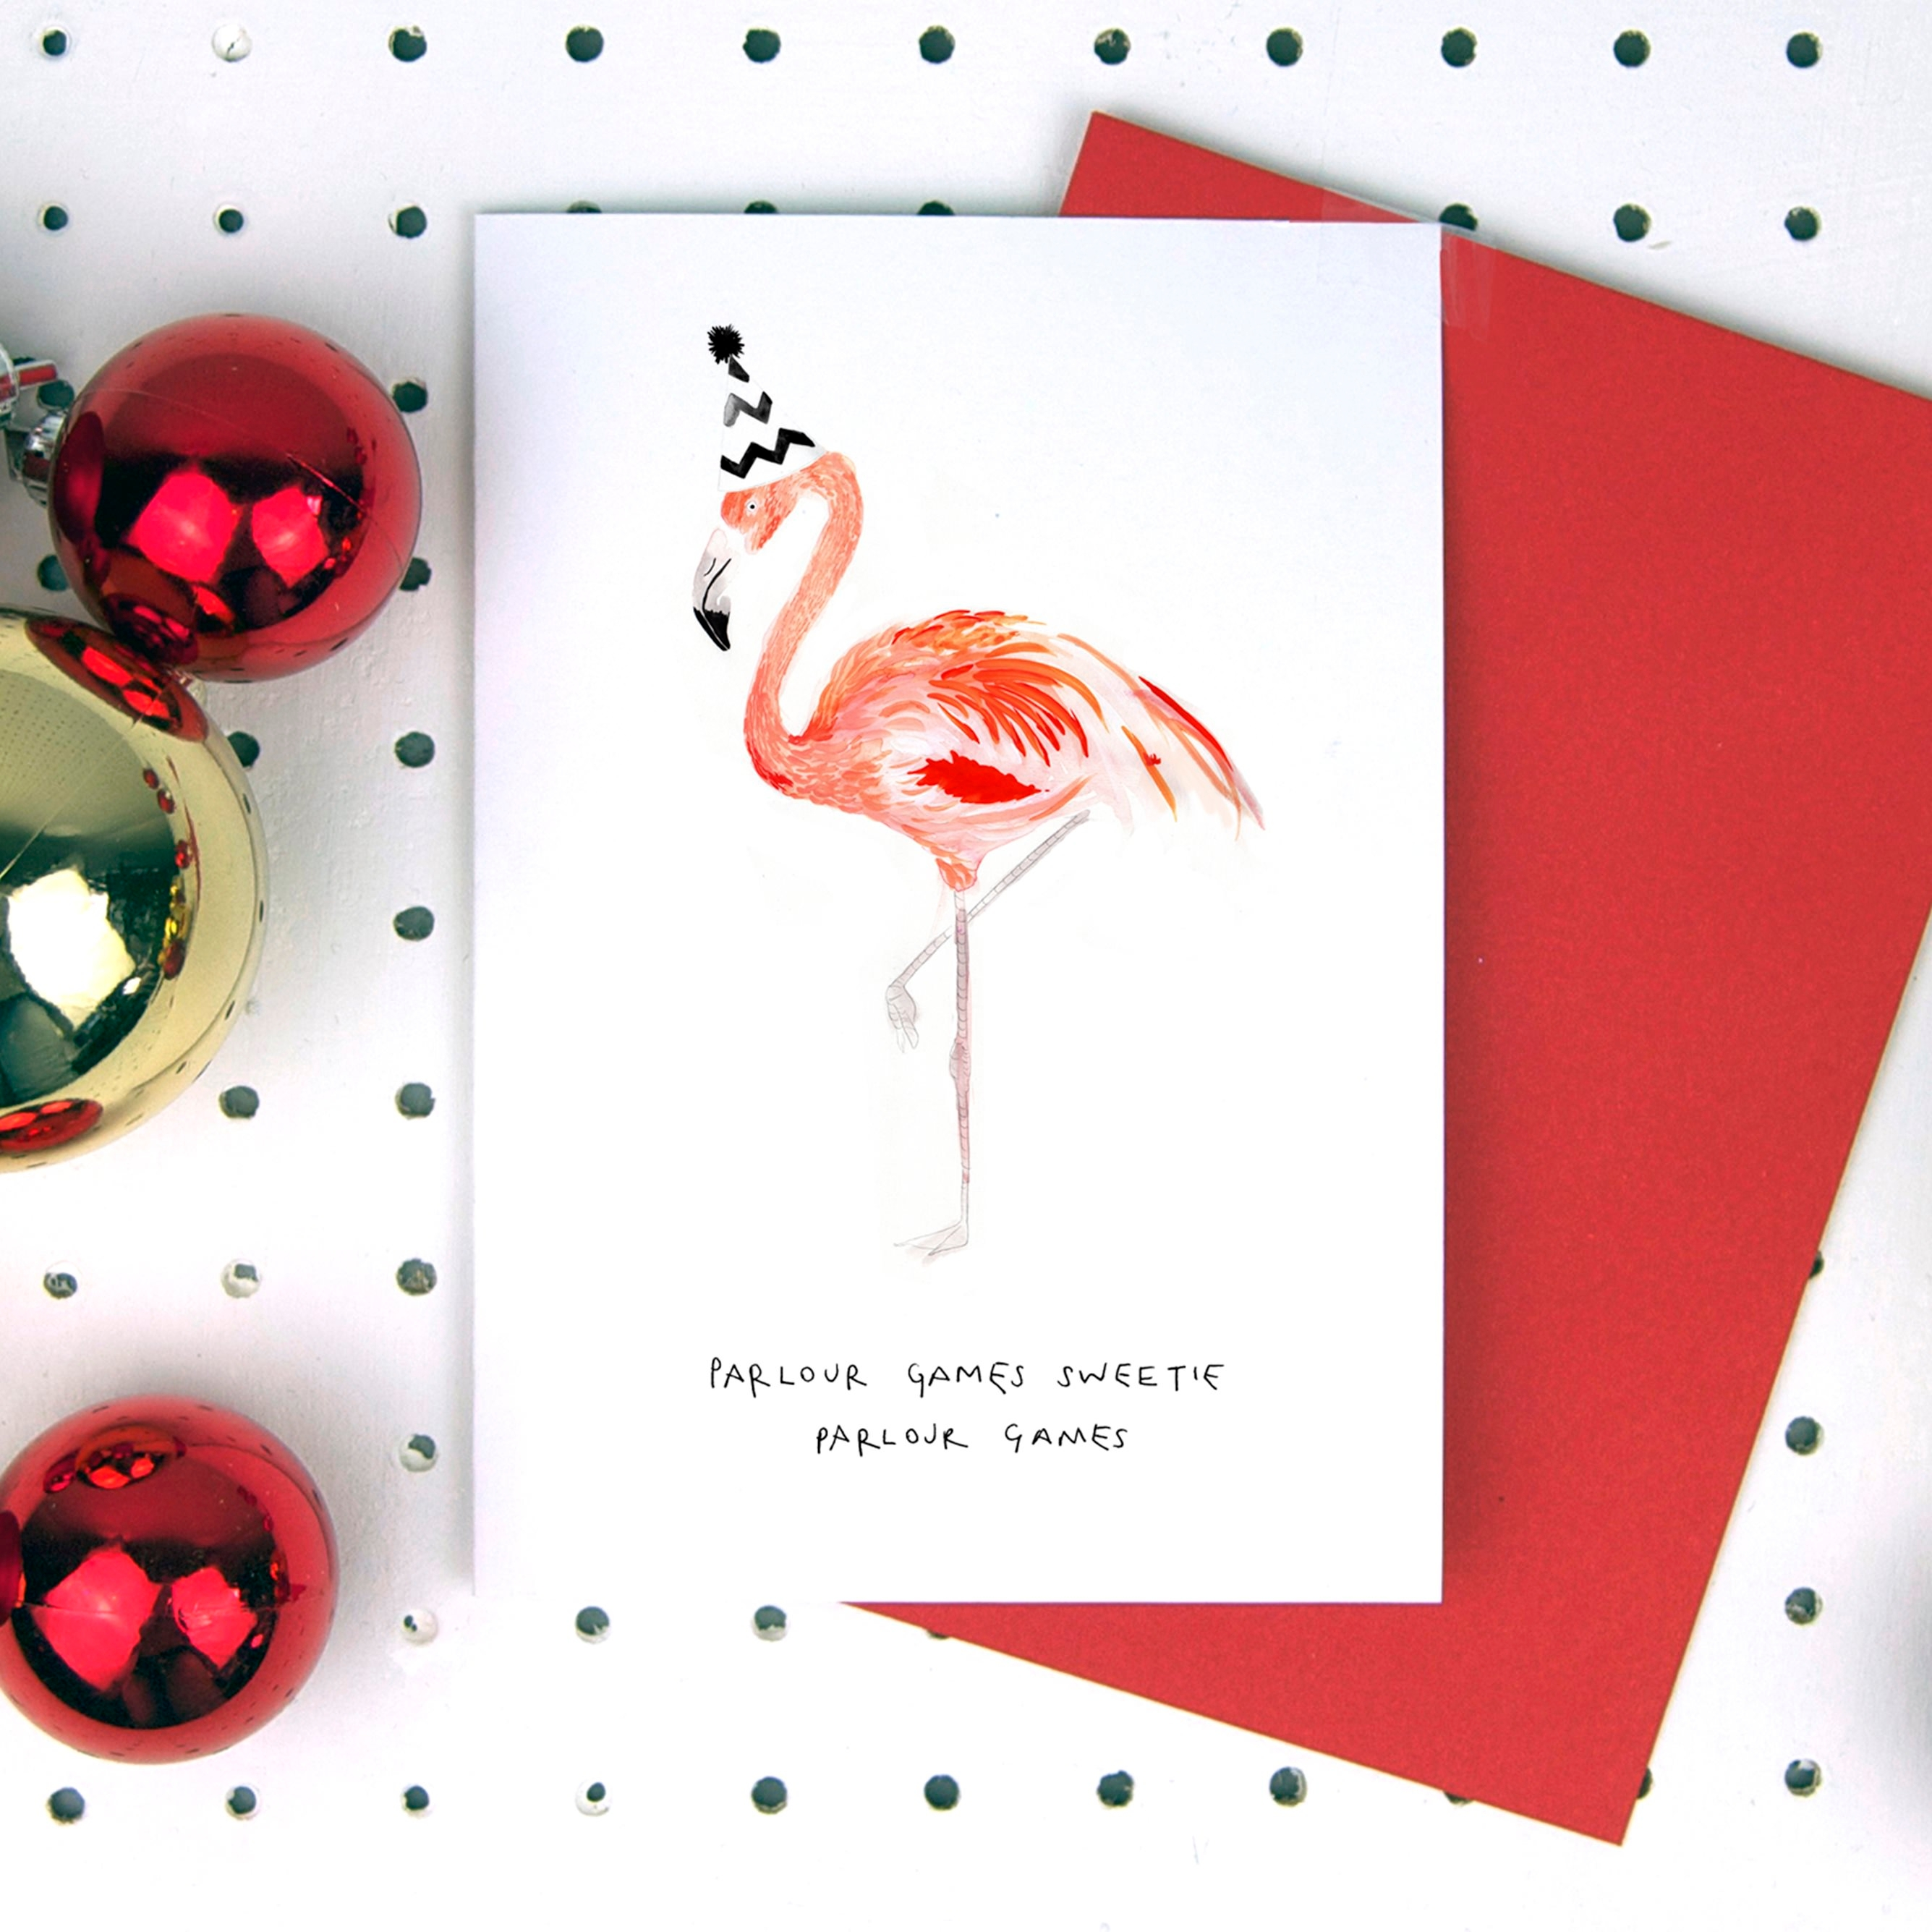 Blank_Inside__Parlour_Games_Sweetie_Flamingo_Christmas_Card__2.45__www.blankinsidedesign.co.uk